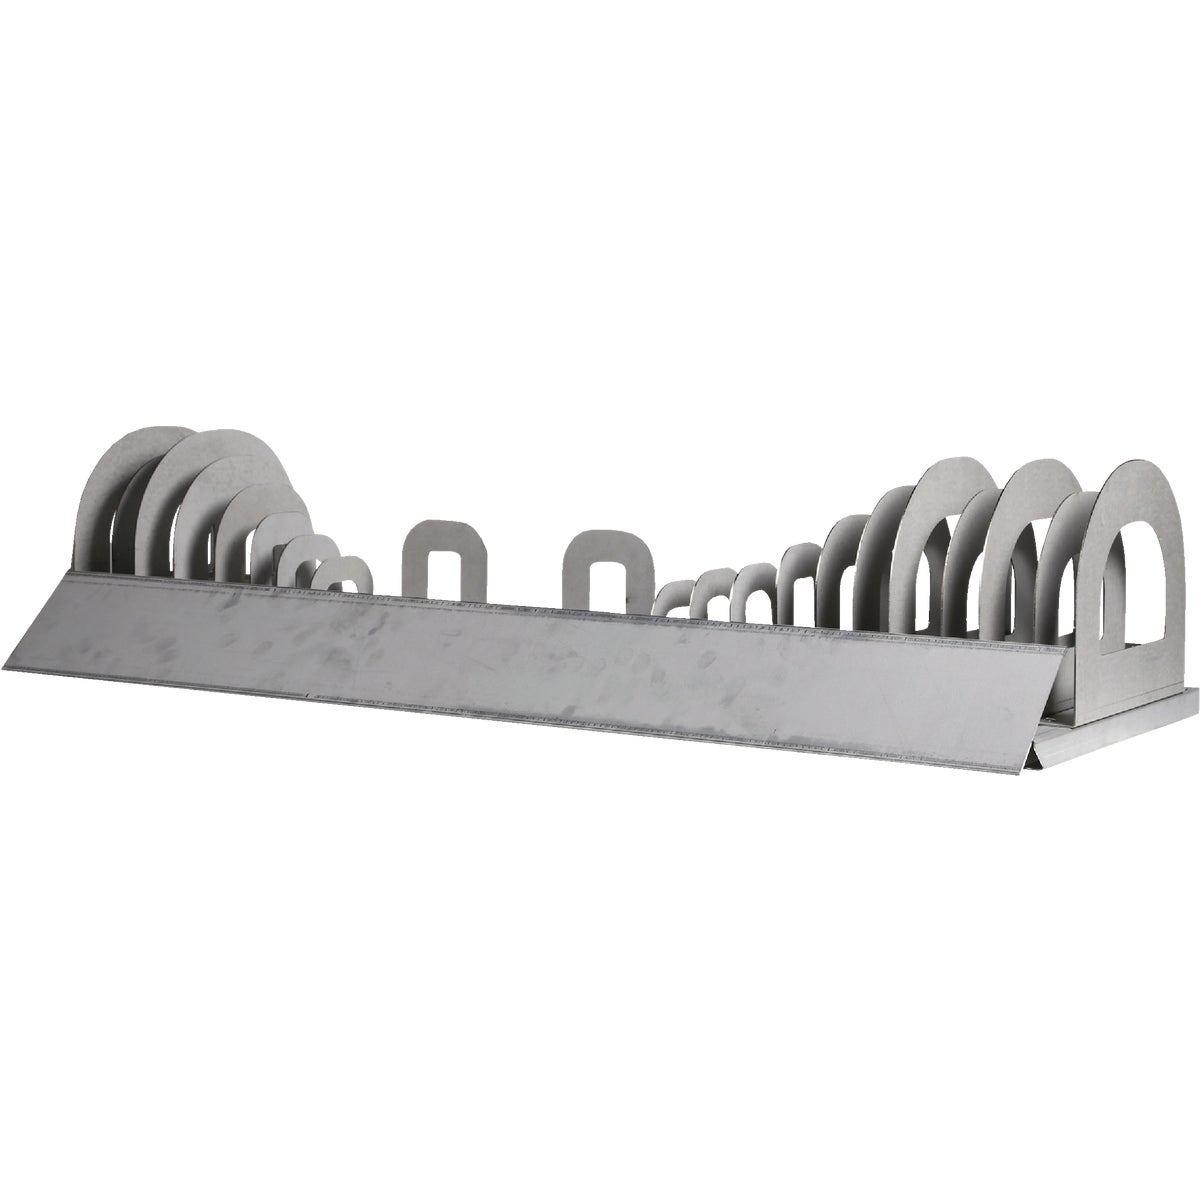 GATOR G LRG WHEEL RACK